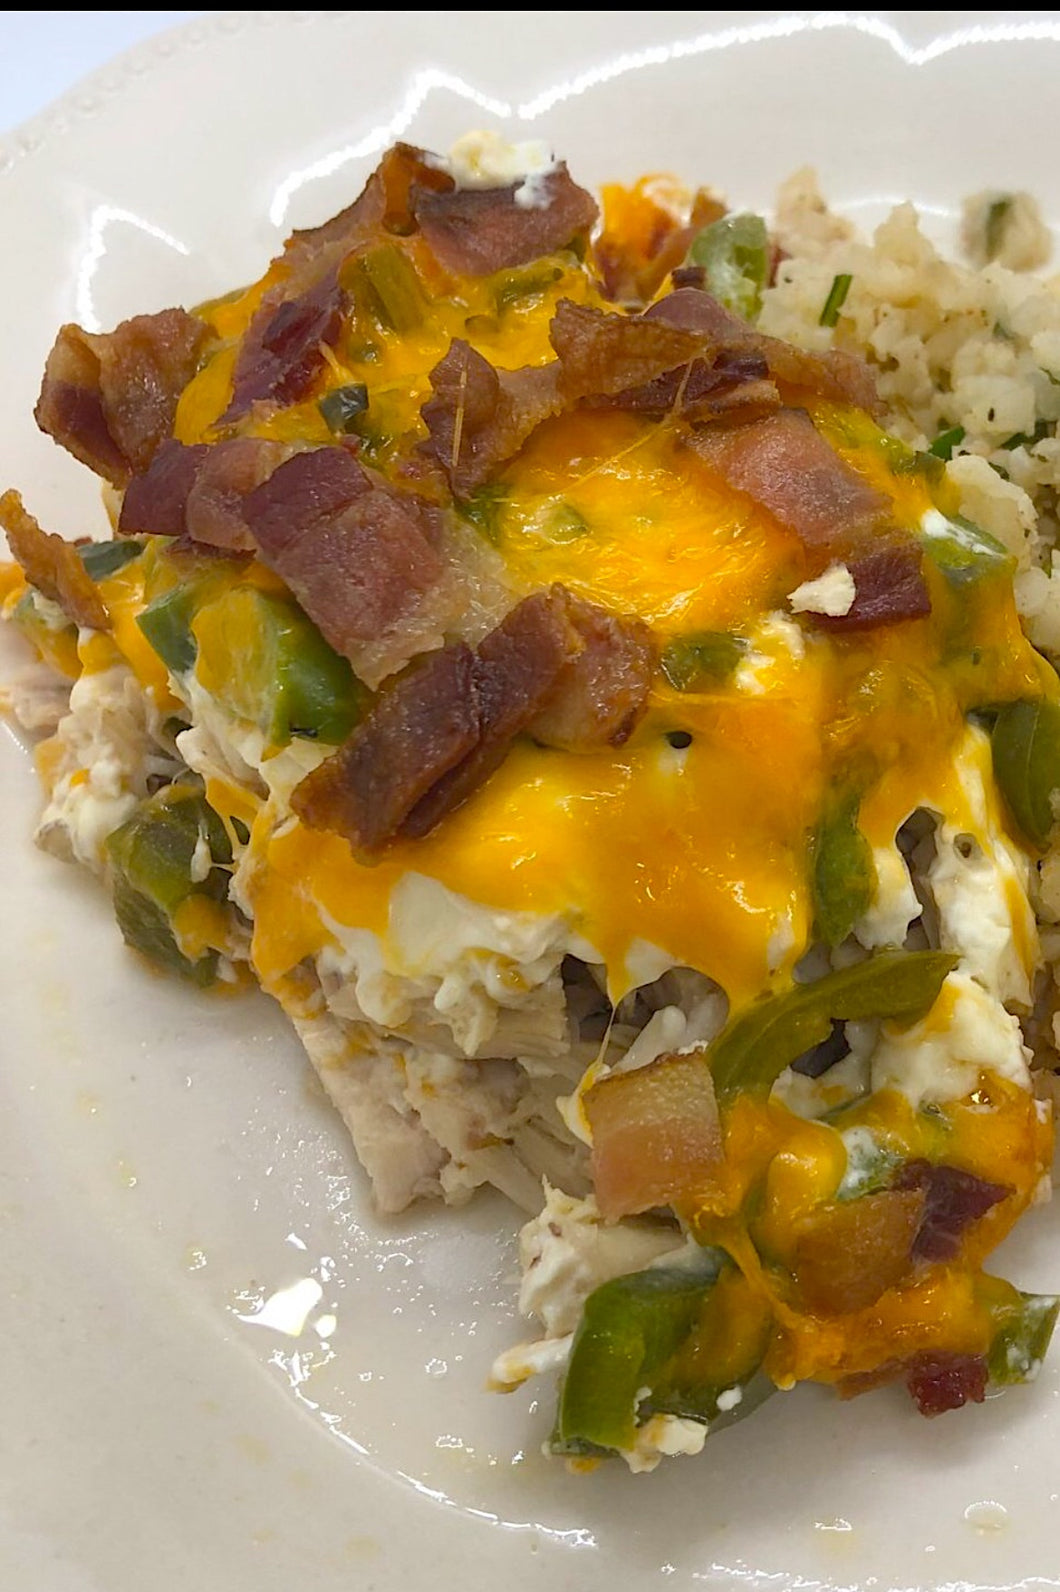 Jalapeno Popper Casserole with Cauliflower Rice